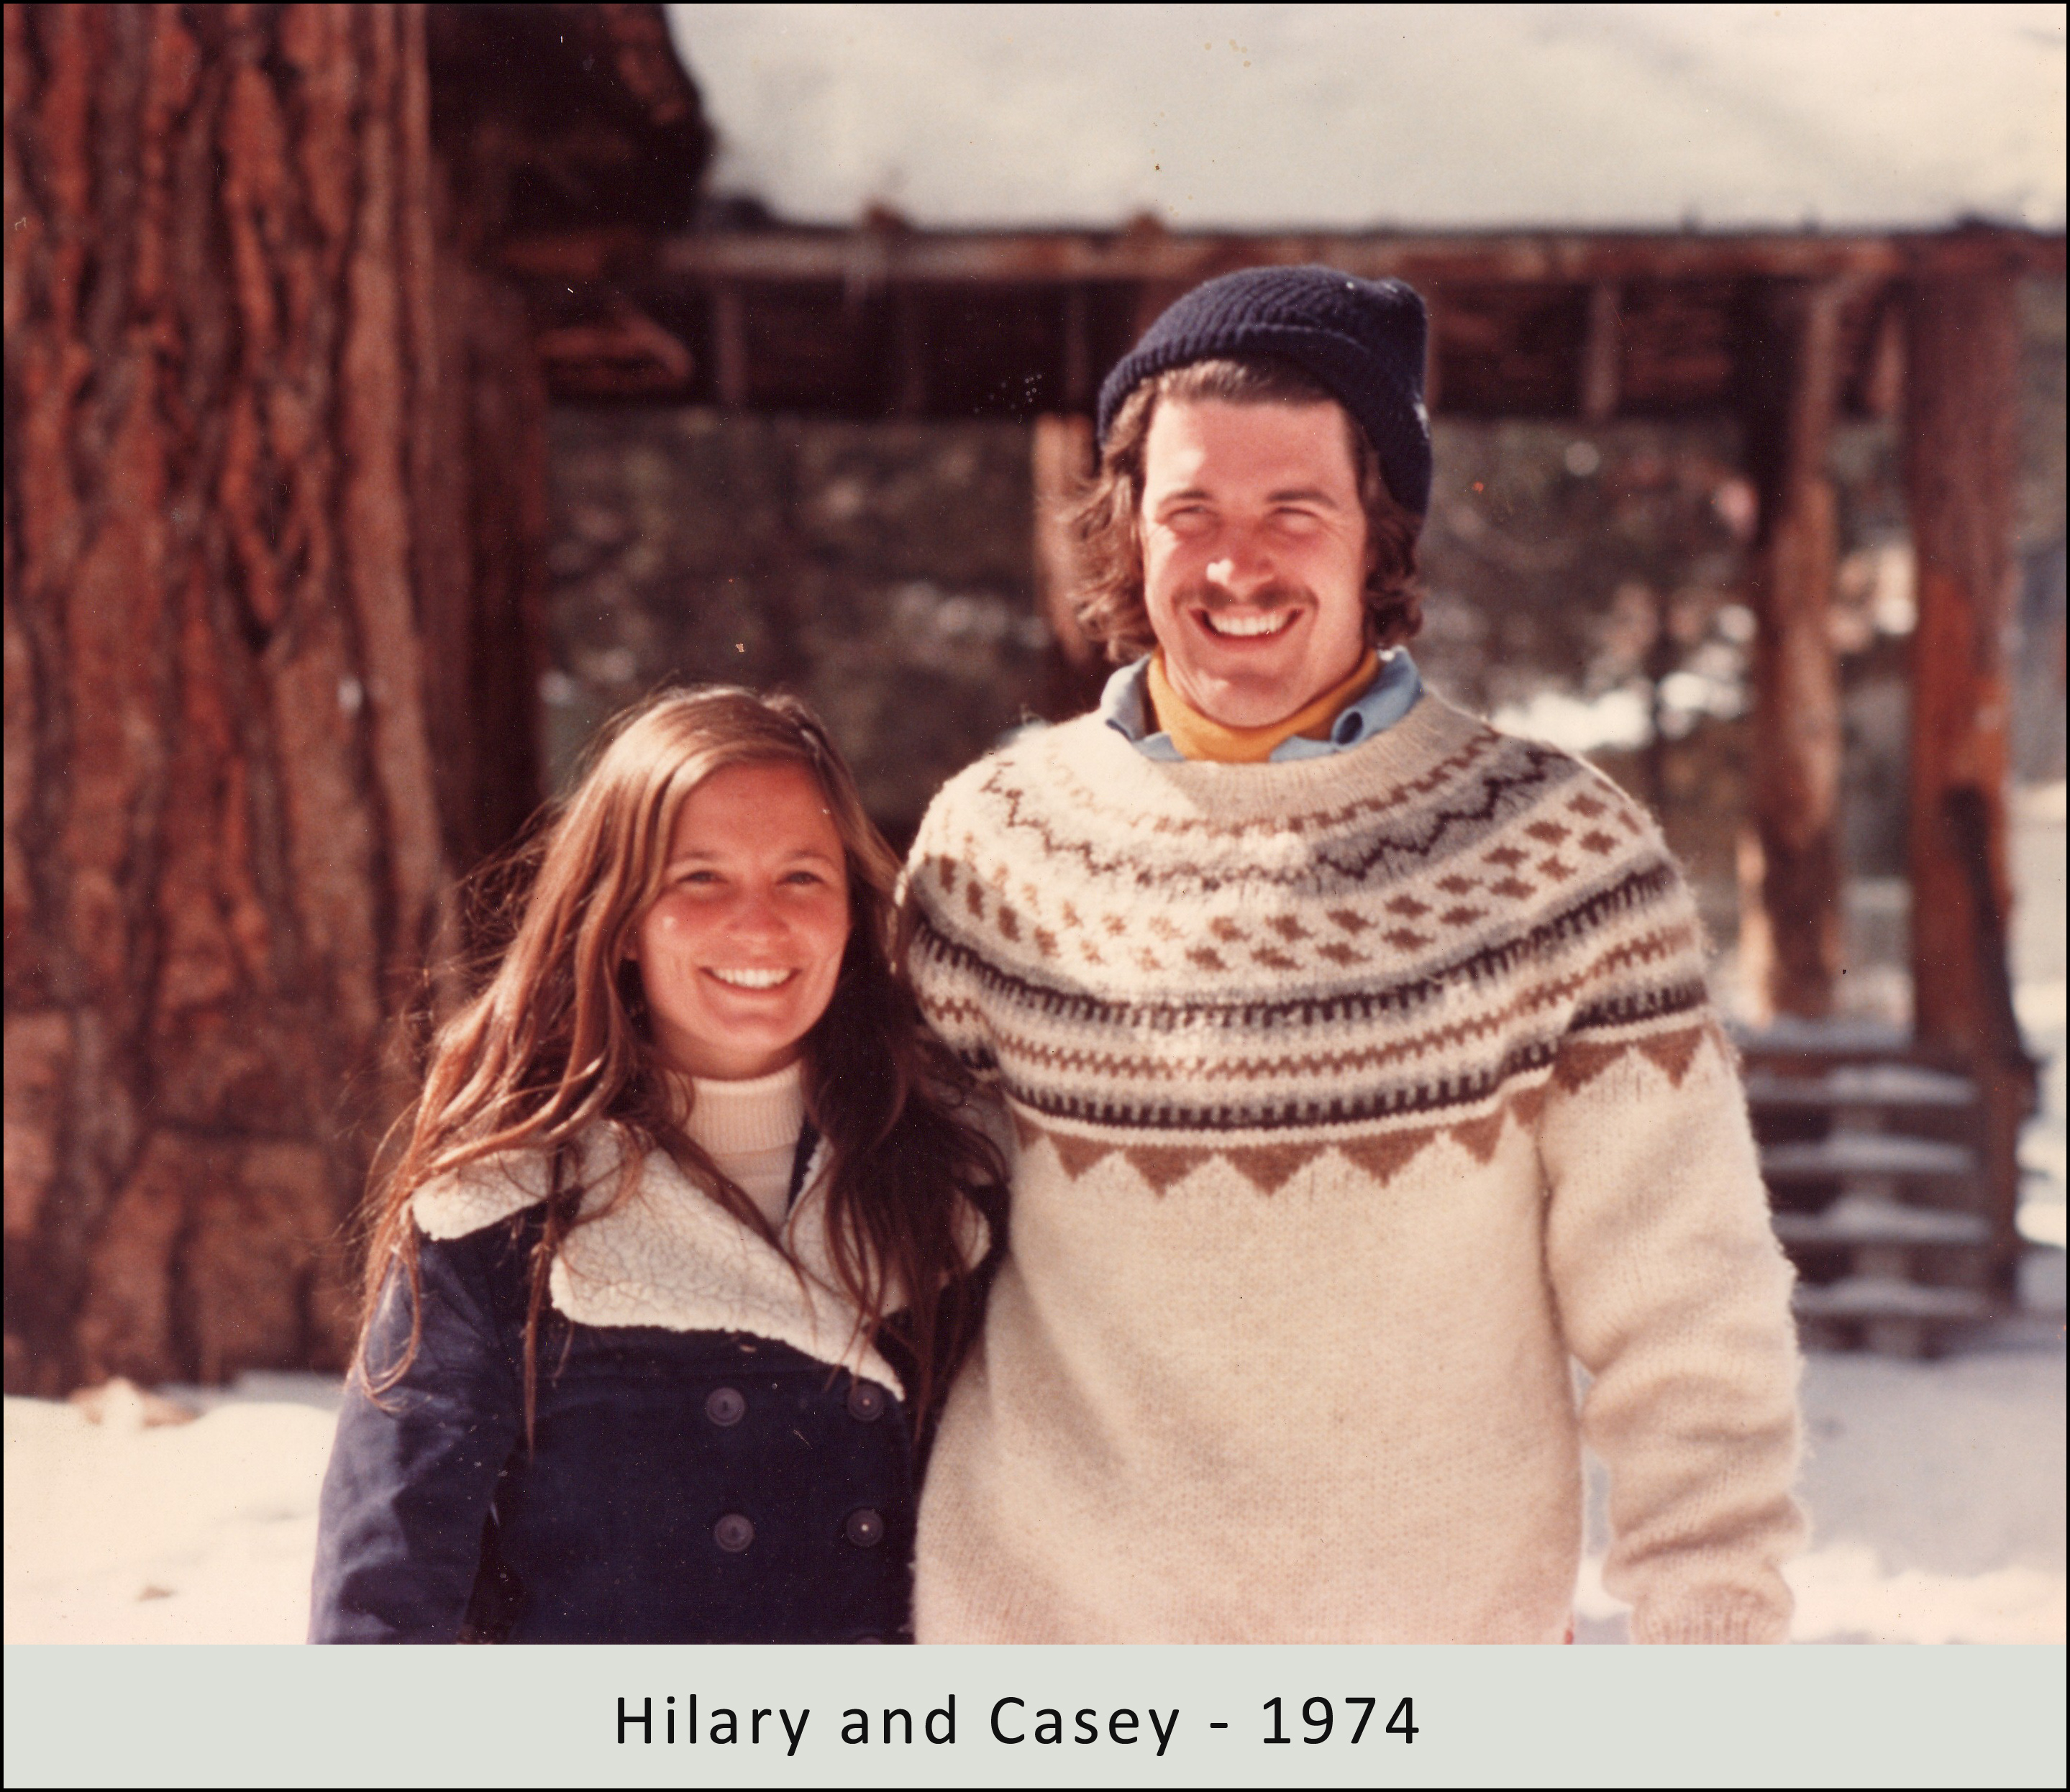 Hilary and Casey in 1974